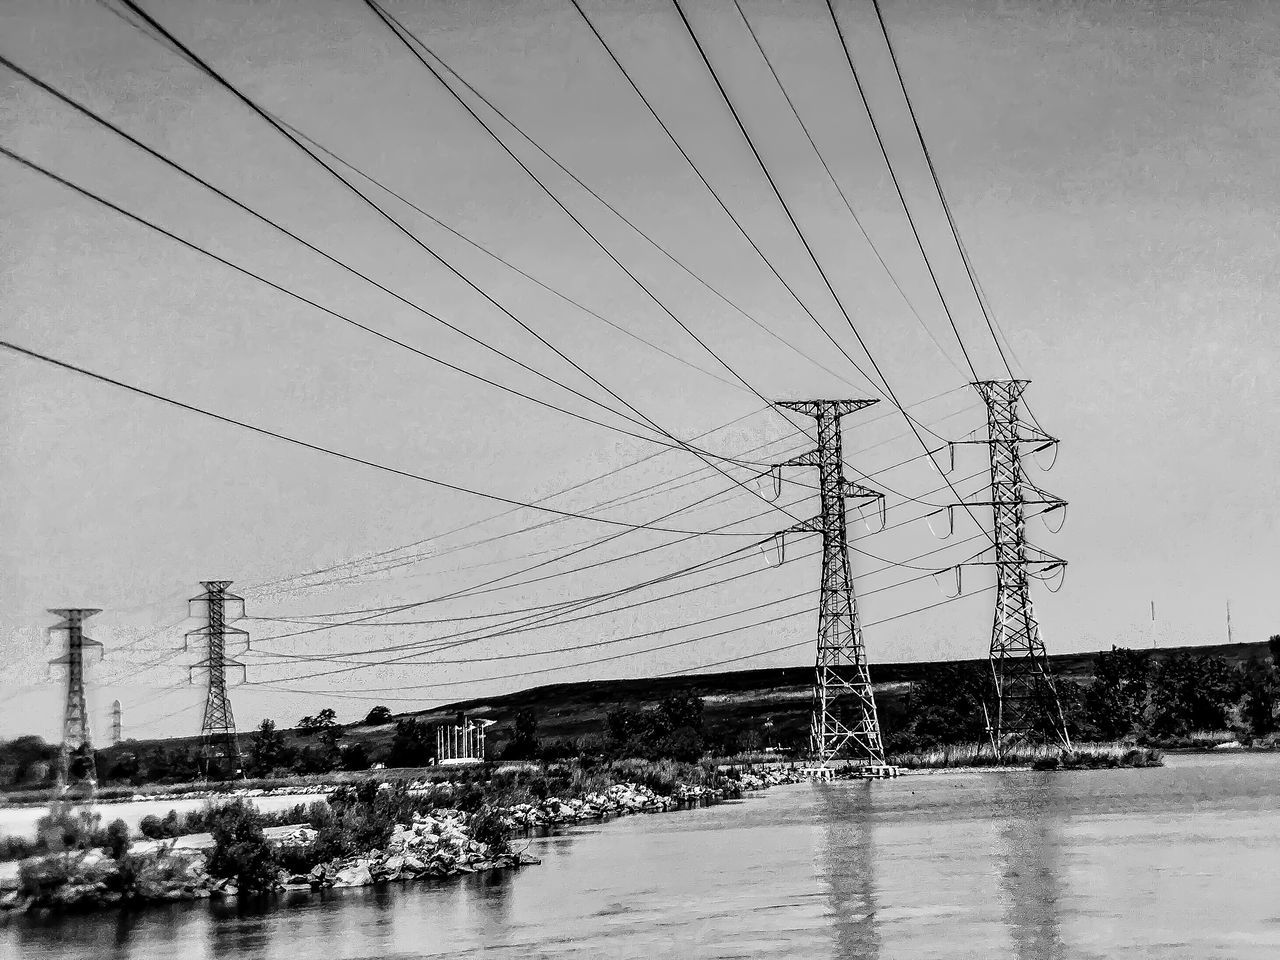 Wires over water. Lgarciaphoto IPhone Photography IPhone IPhoneography IPhone 7 Plus Iphonephotography Iphoneonly Shot On IPhone New Jersey New Jersey Photography Meadowlands Nature Cable Power Line  Electricity  Power Supply Sky Electricity Pylon Fuel And Power Generation Connection Outdoors Nature Day Built Structure Architecture Electricity Tower Water No People Building Exterior Telephone Line Snow